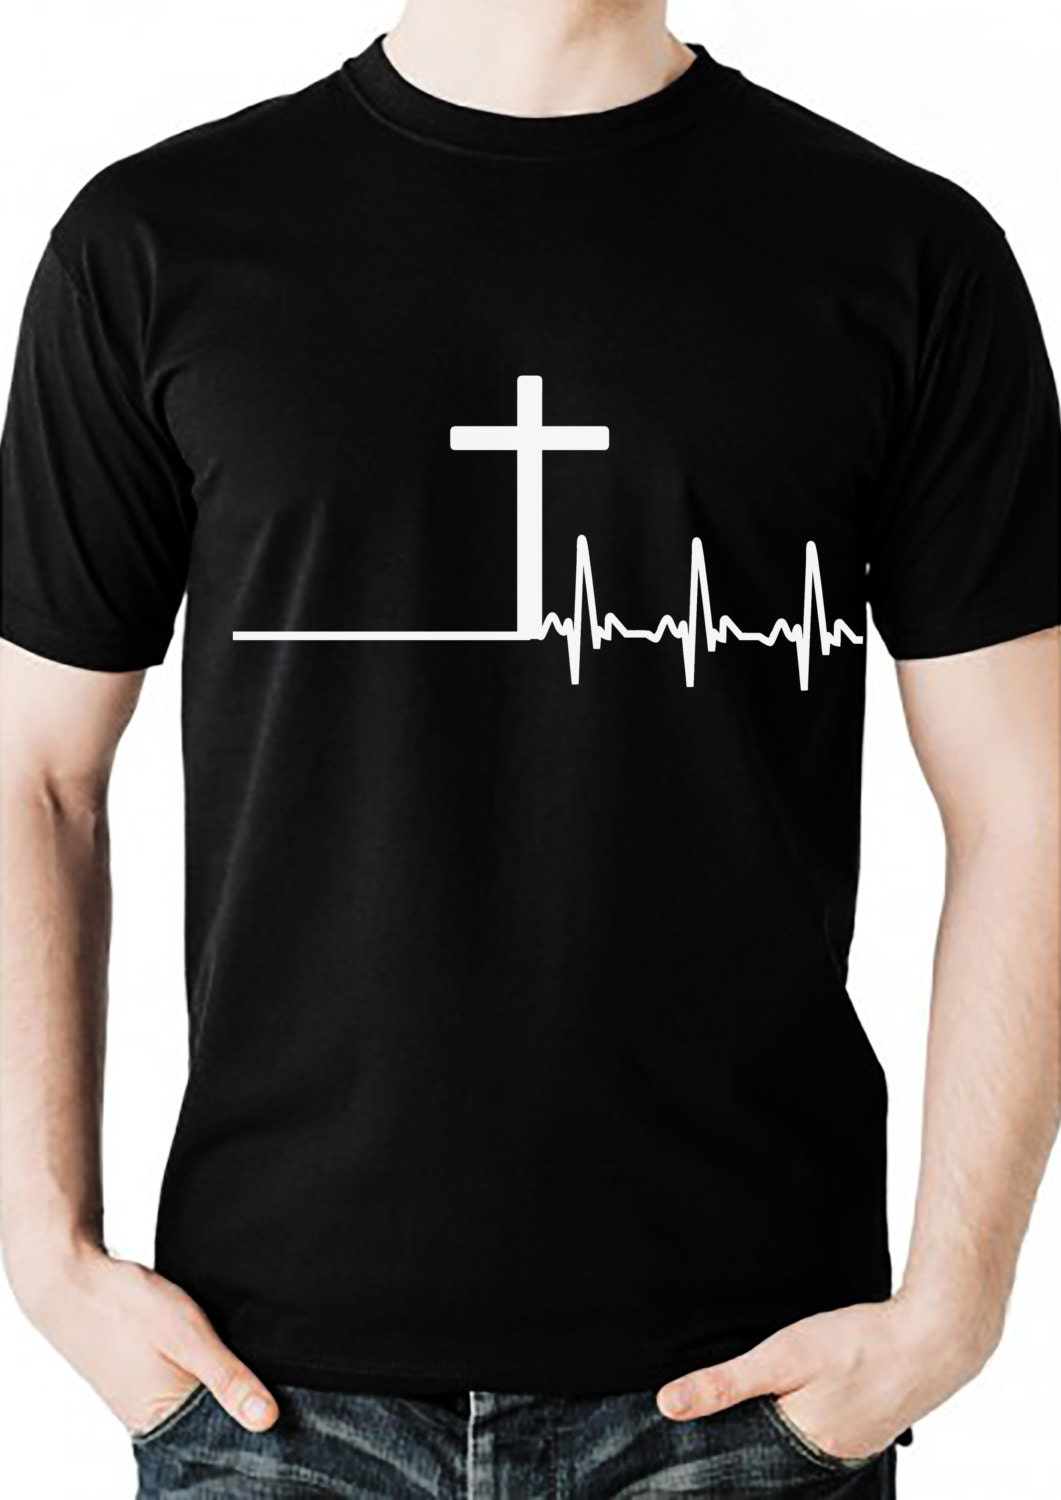 Men's christian tshirt with cross and heartbeat design